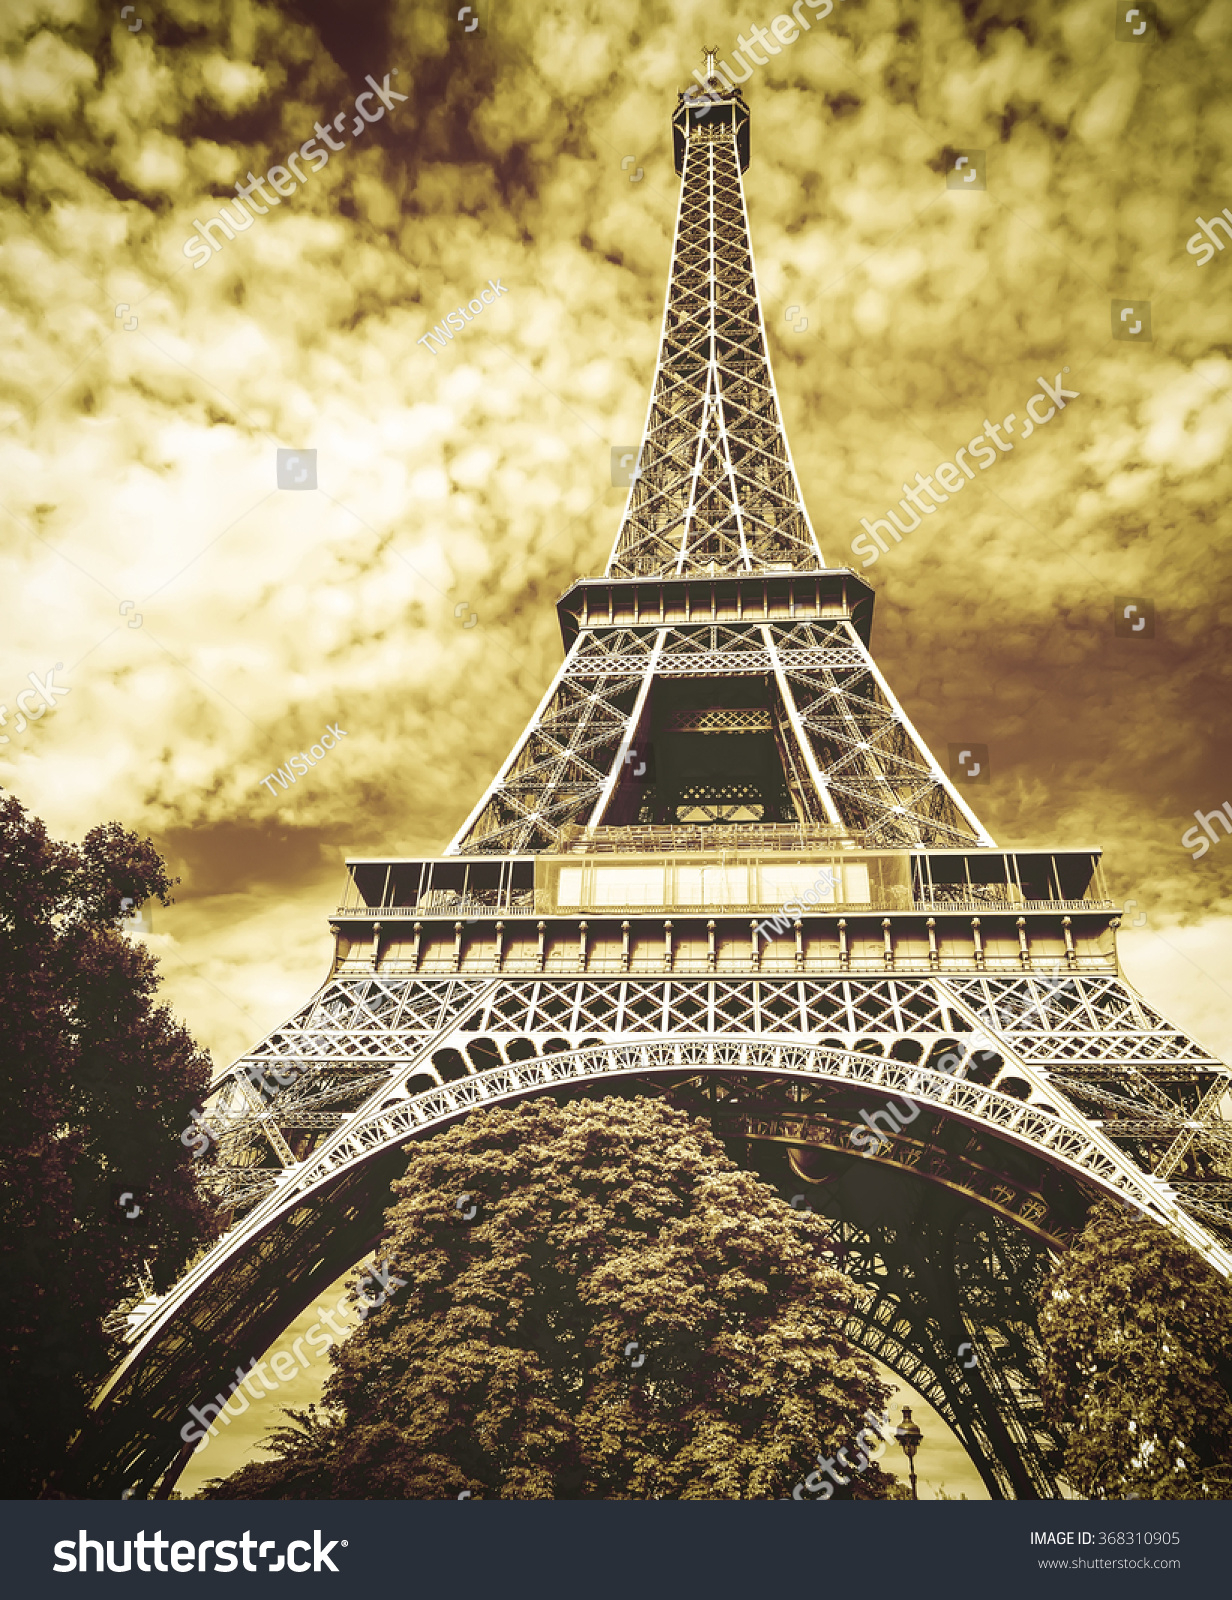 Dorable Light Up Eiffel Tower Wall Decoration Composition - Wall ...